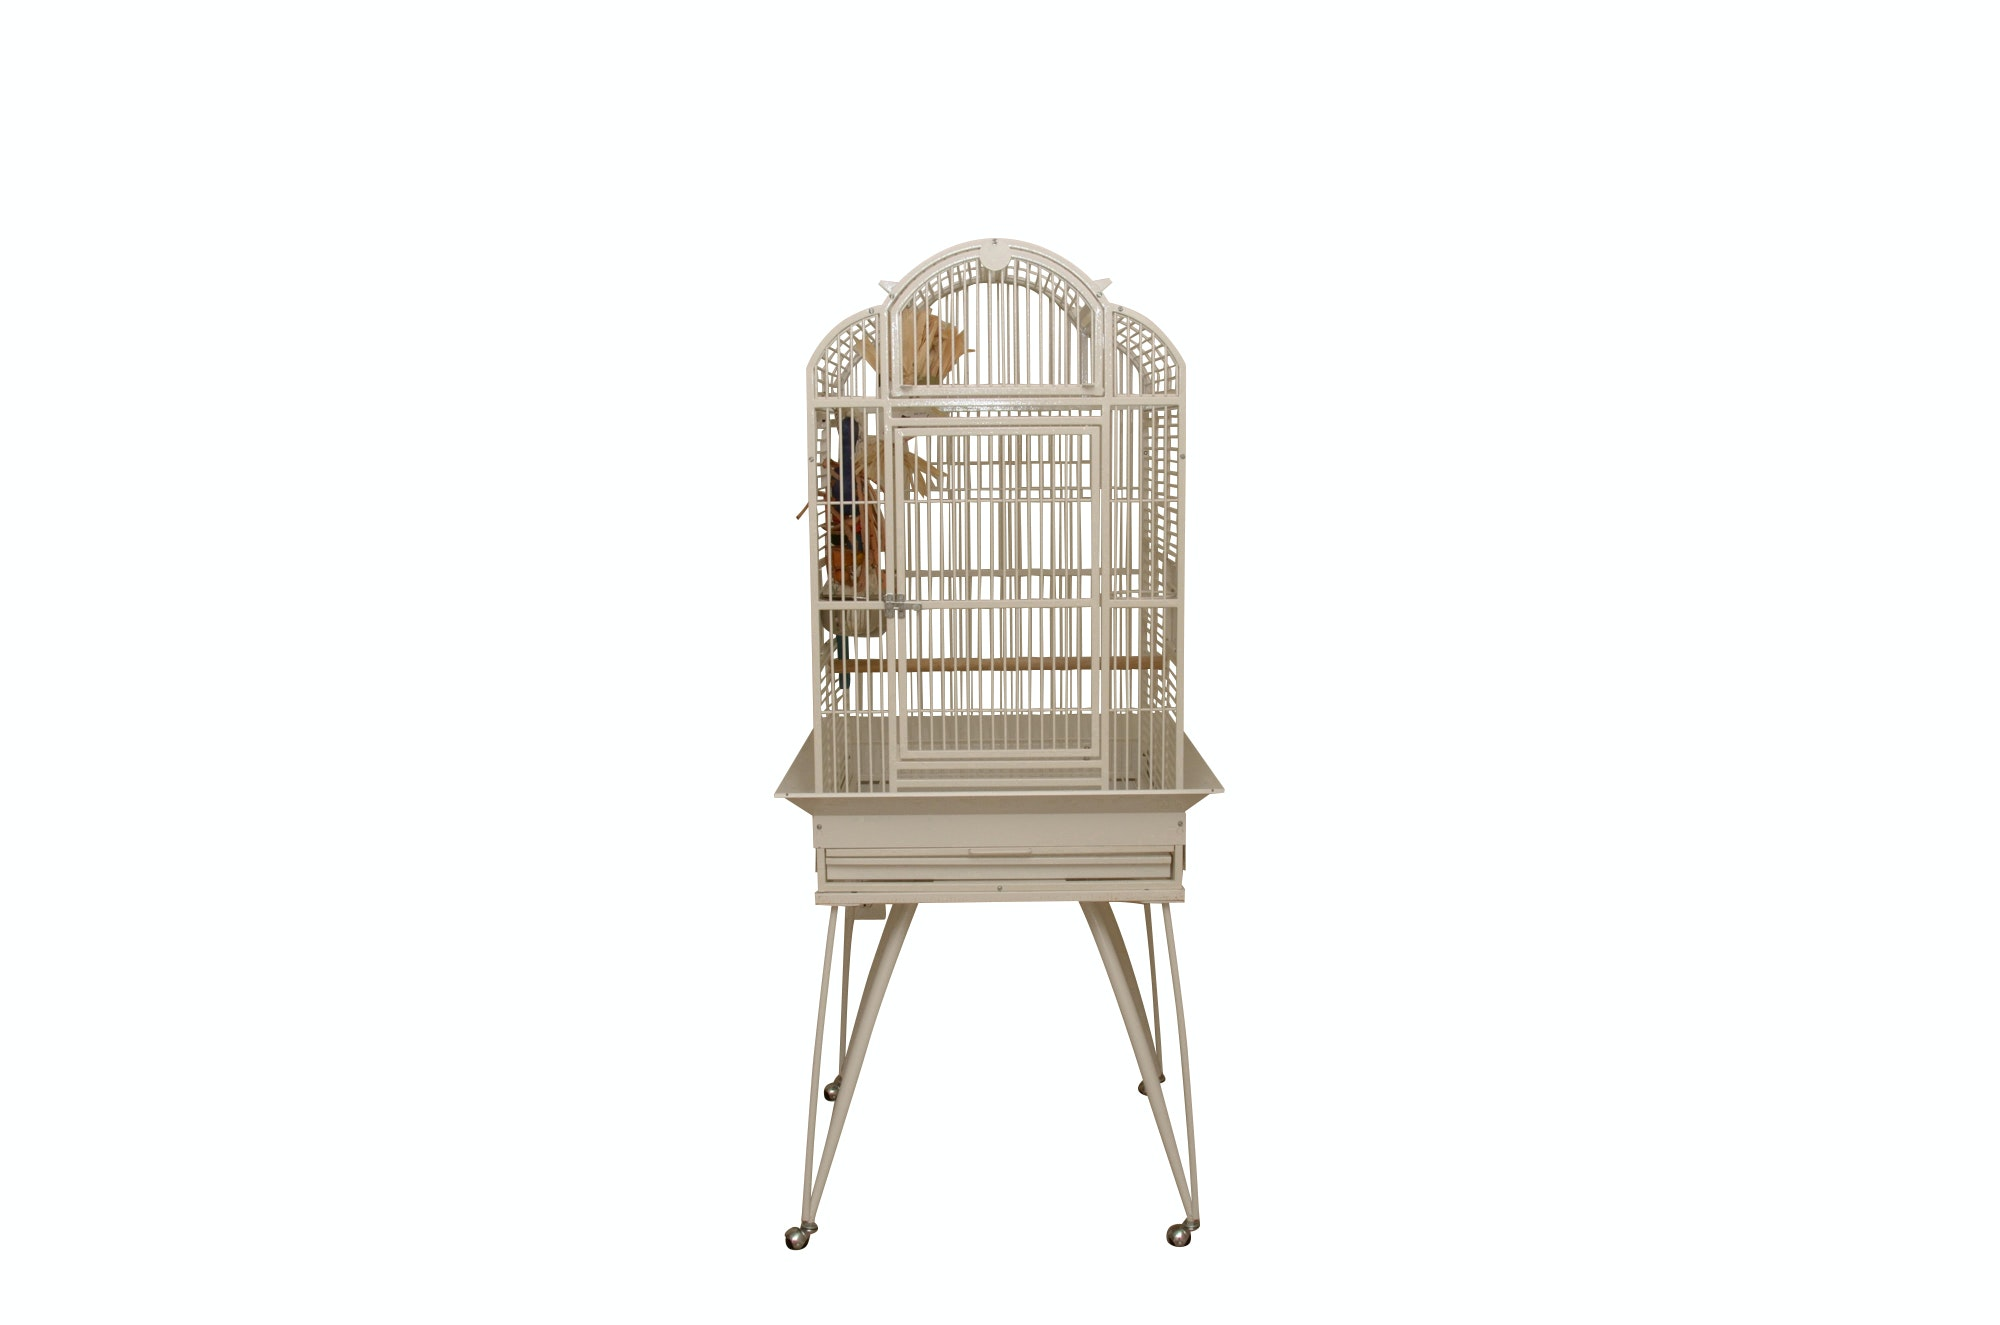 King's Powder-Coated Metal Bird Cage on Rolling Stand